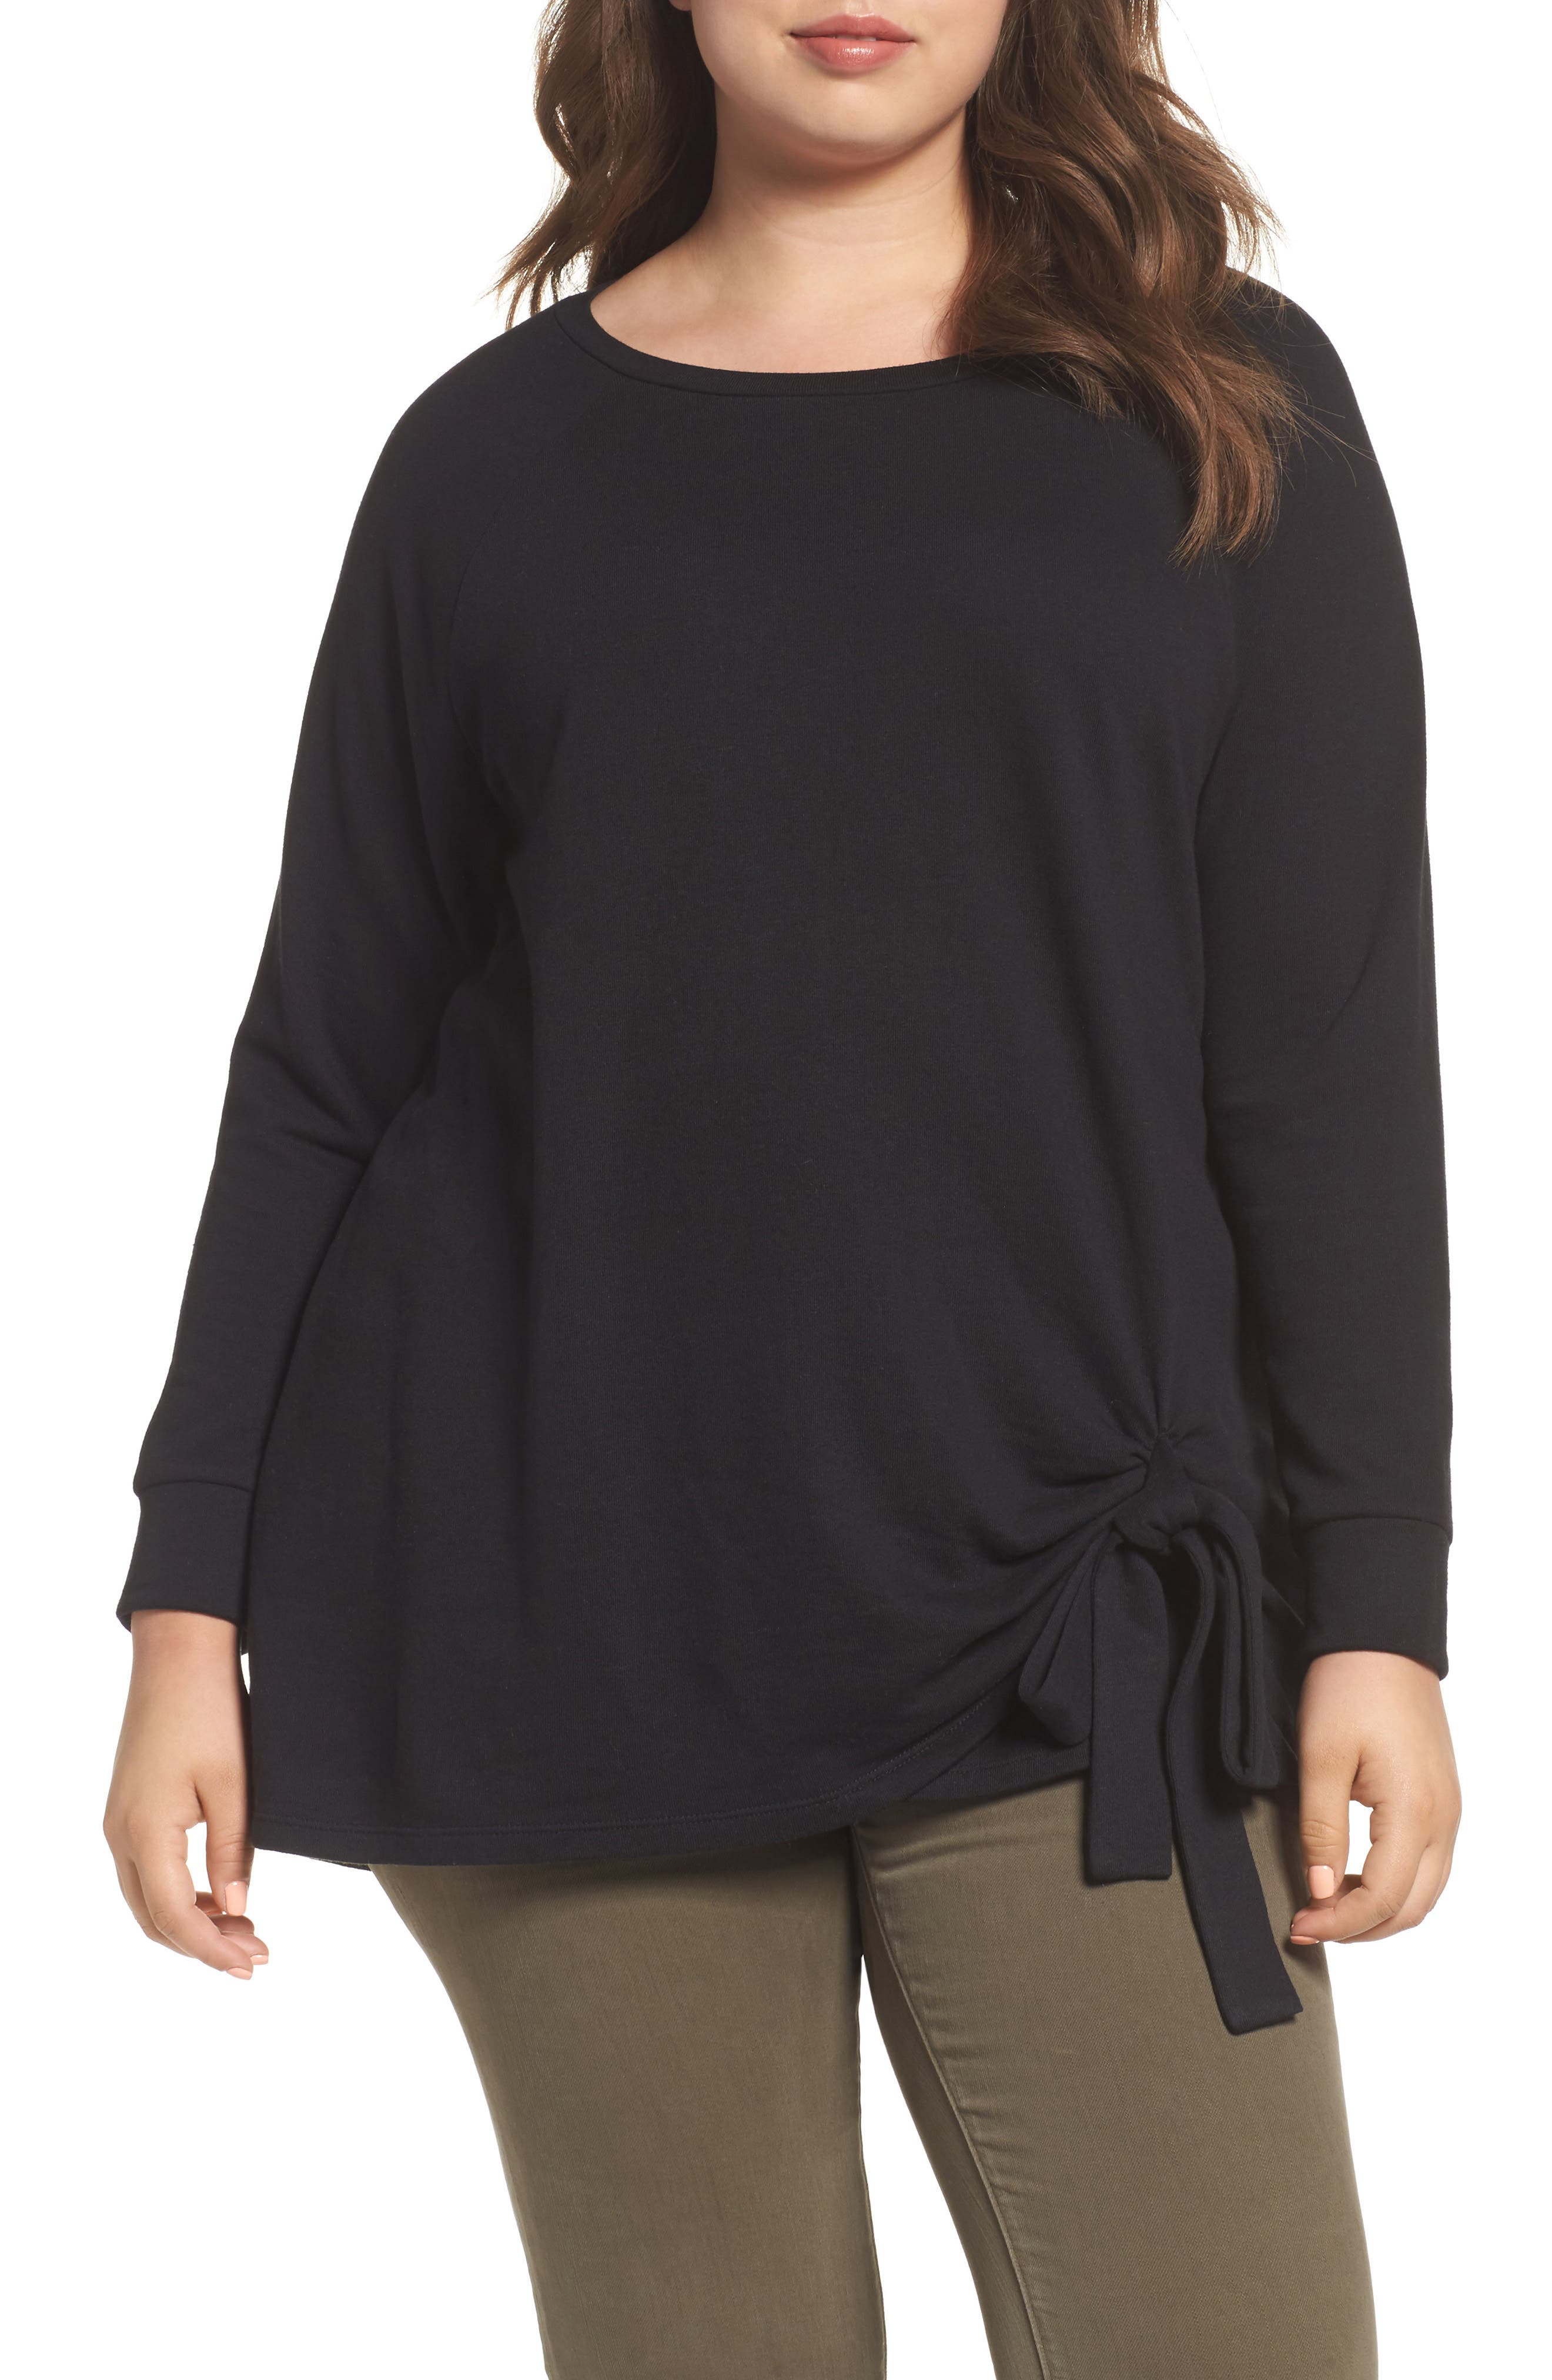 Alternate Image 1 Selected - Caslon® Tie Knot Sweatshirt (Plus Size)